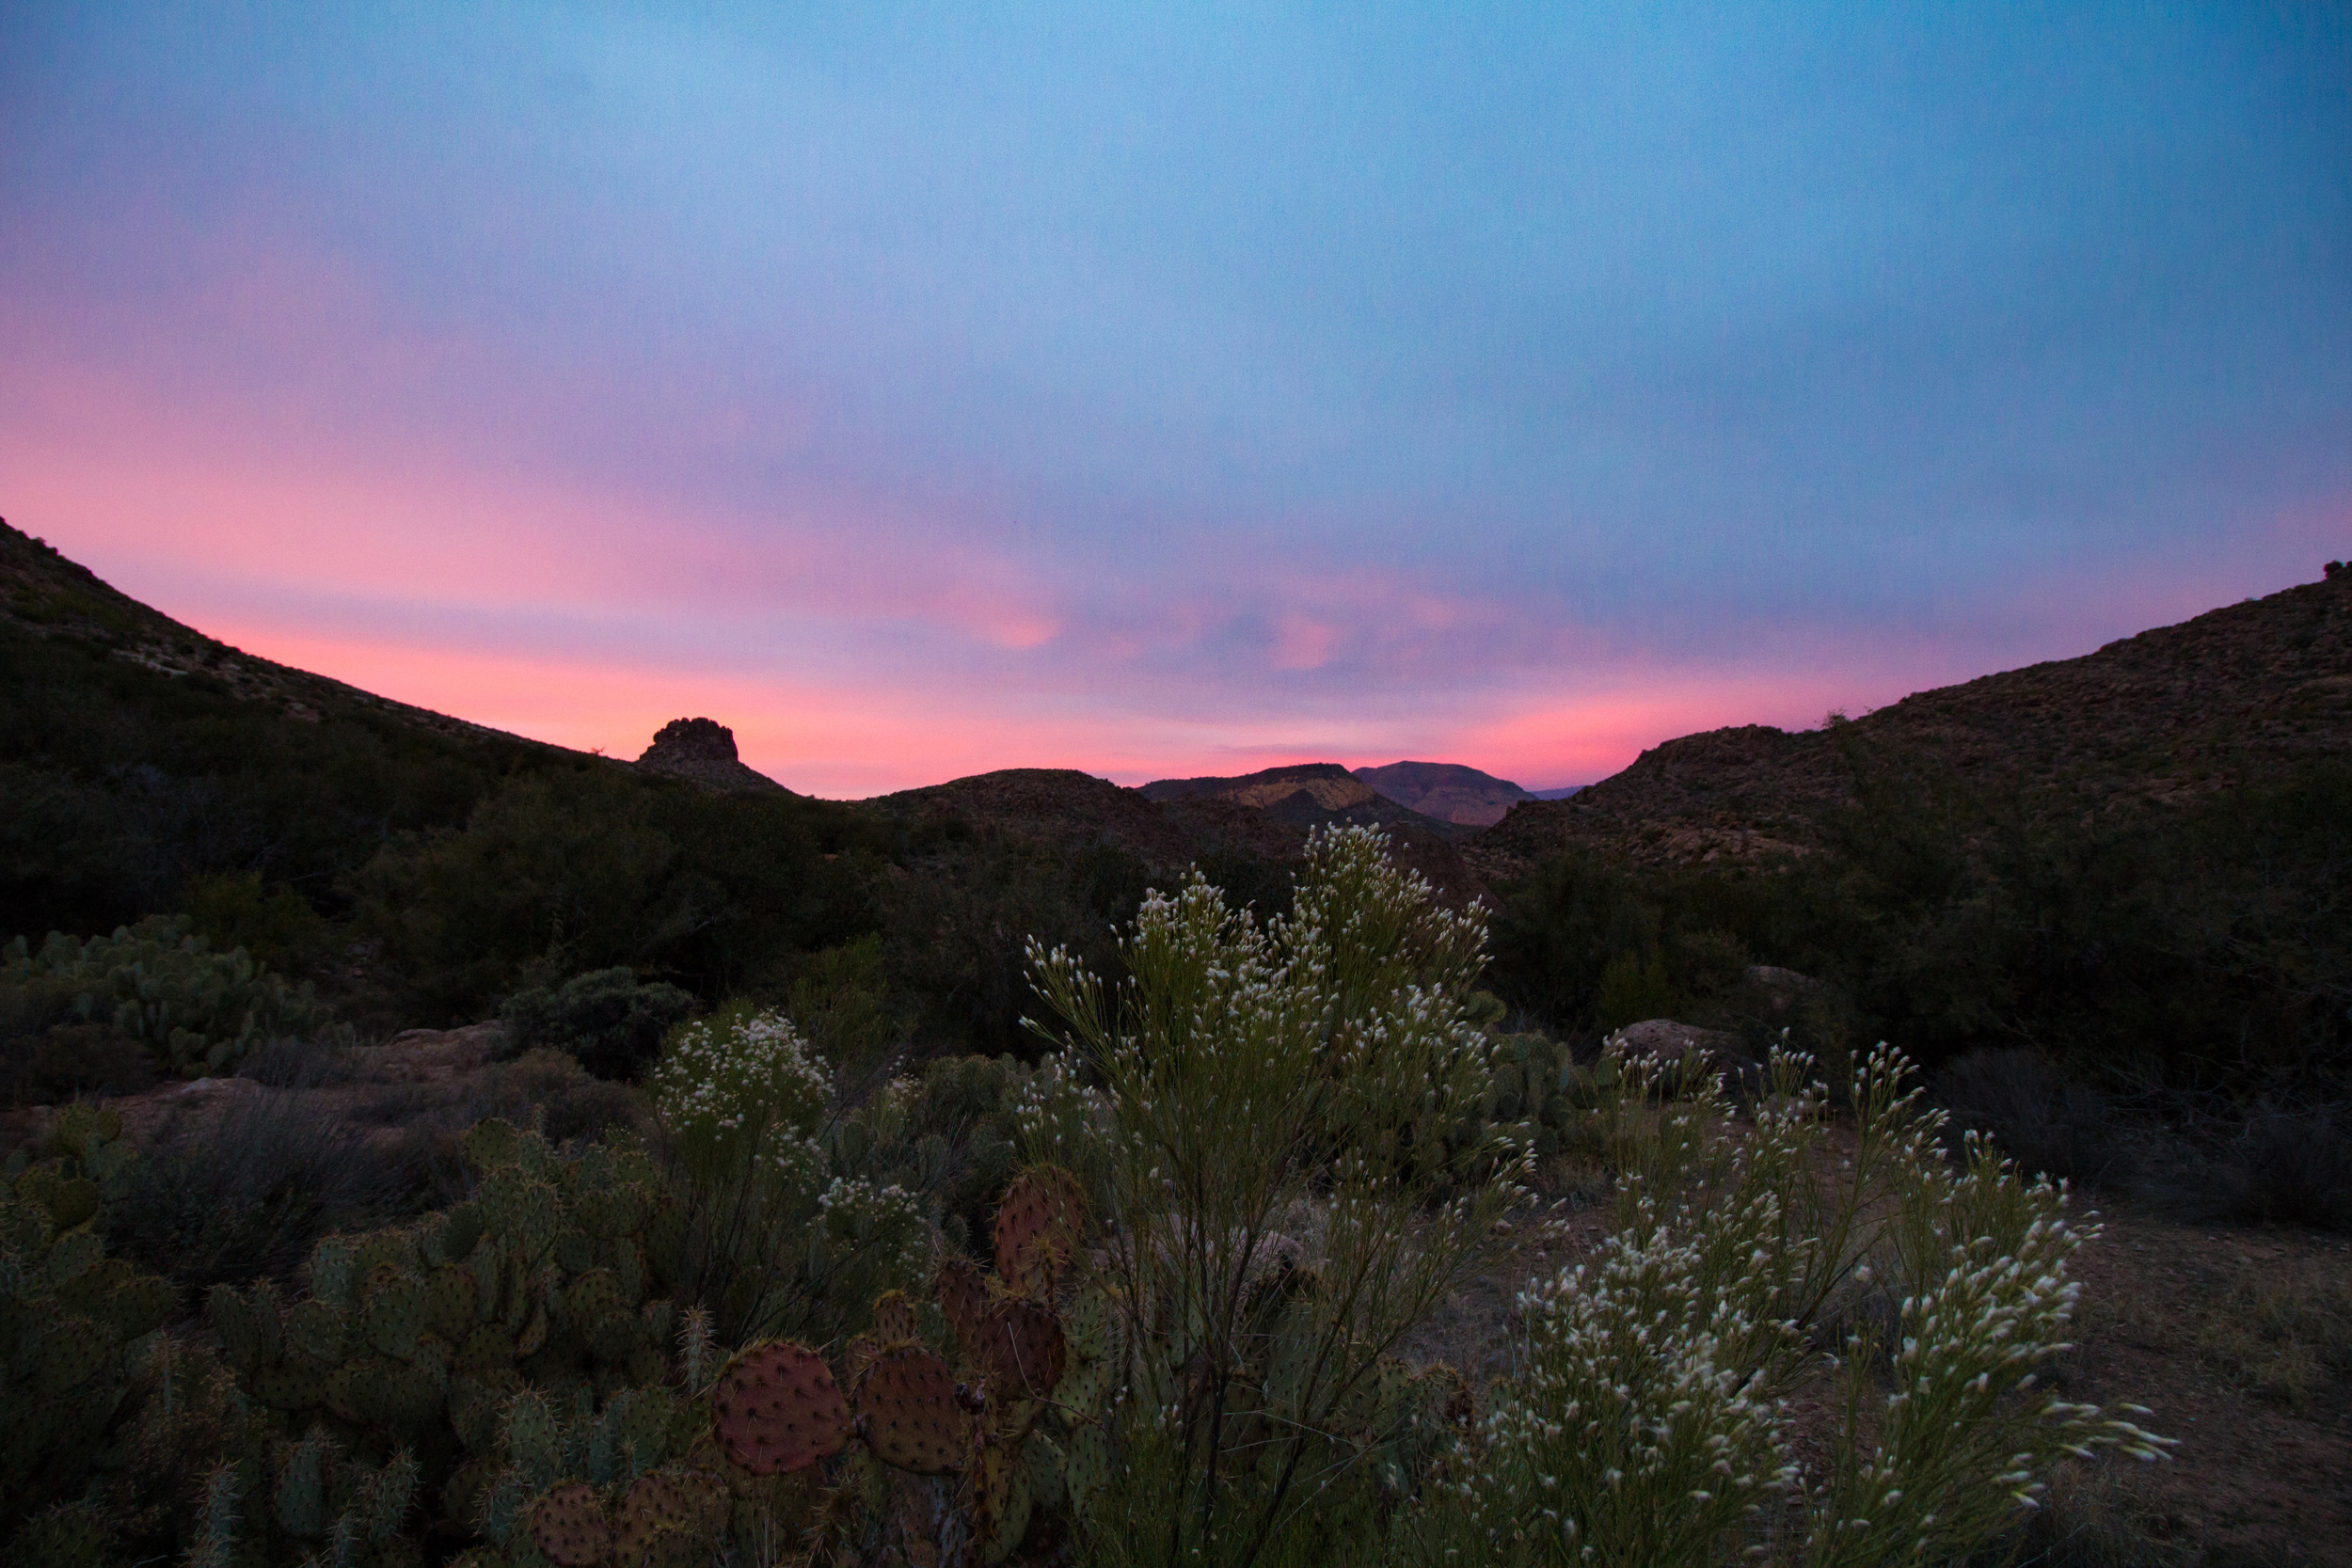 Sunset in the Superstition Mountains, Arizona